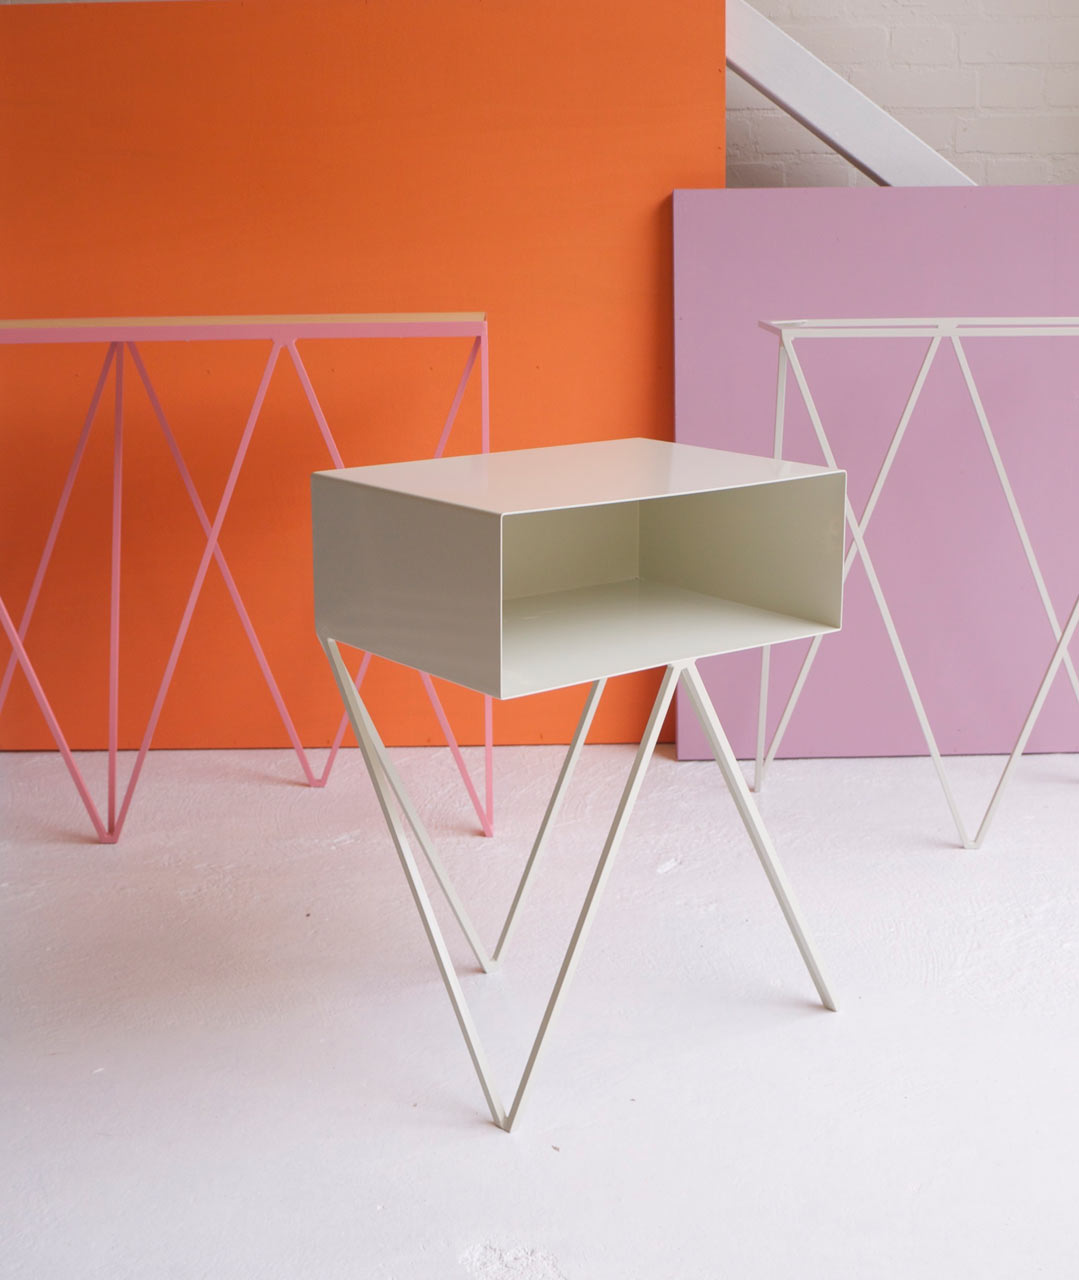 New modern minimalist furniture made of steel